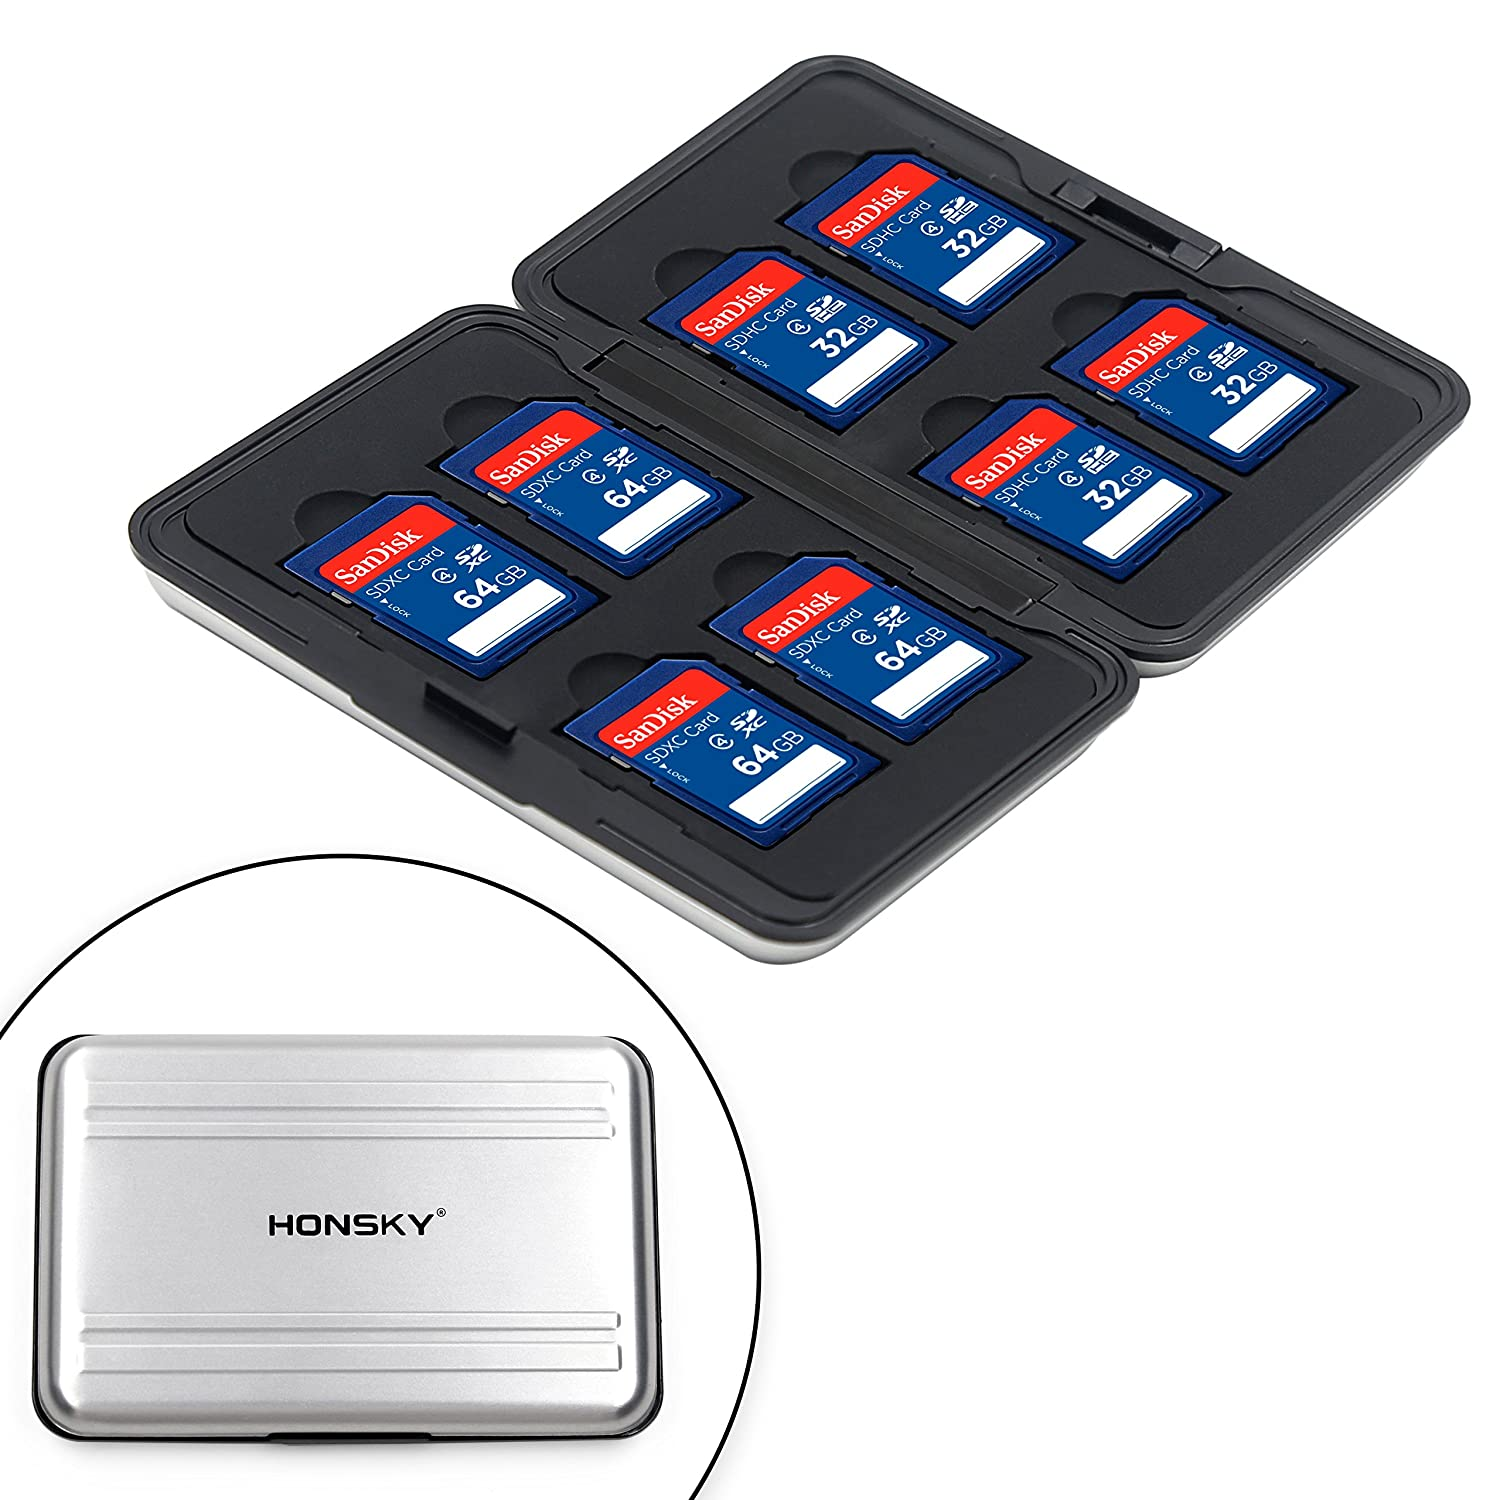 Honsky Aluminum UHS-I SD Micro SD SDHC SDXC TF SecureDigital Memory Card Carrying Case Holder Organizer Box Keeper for Computer Camera Media Storage ...